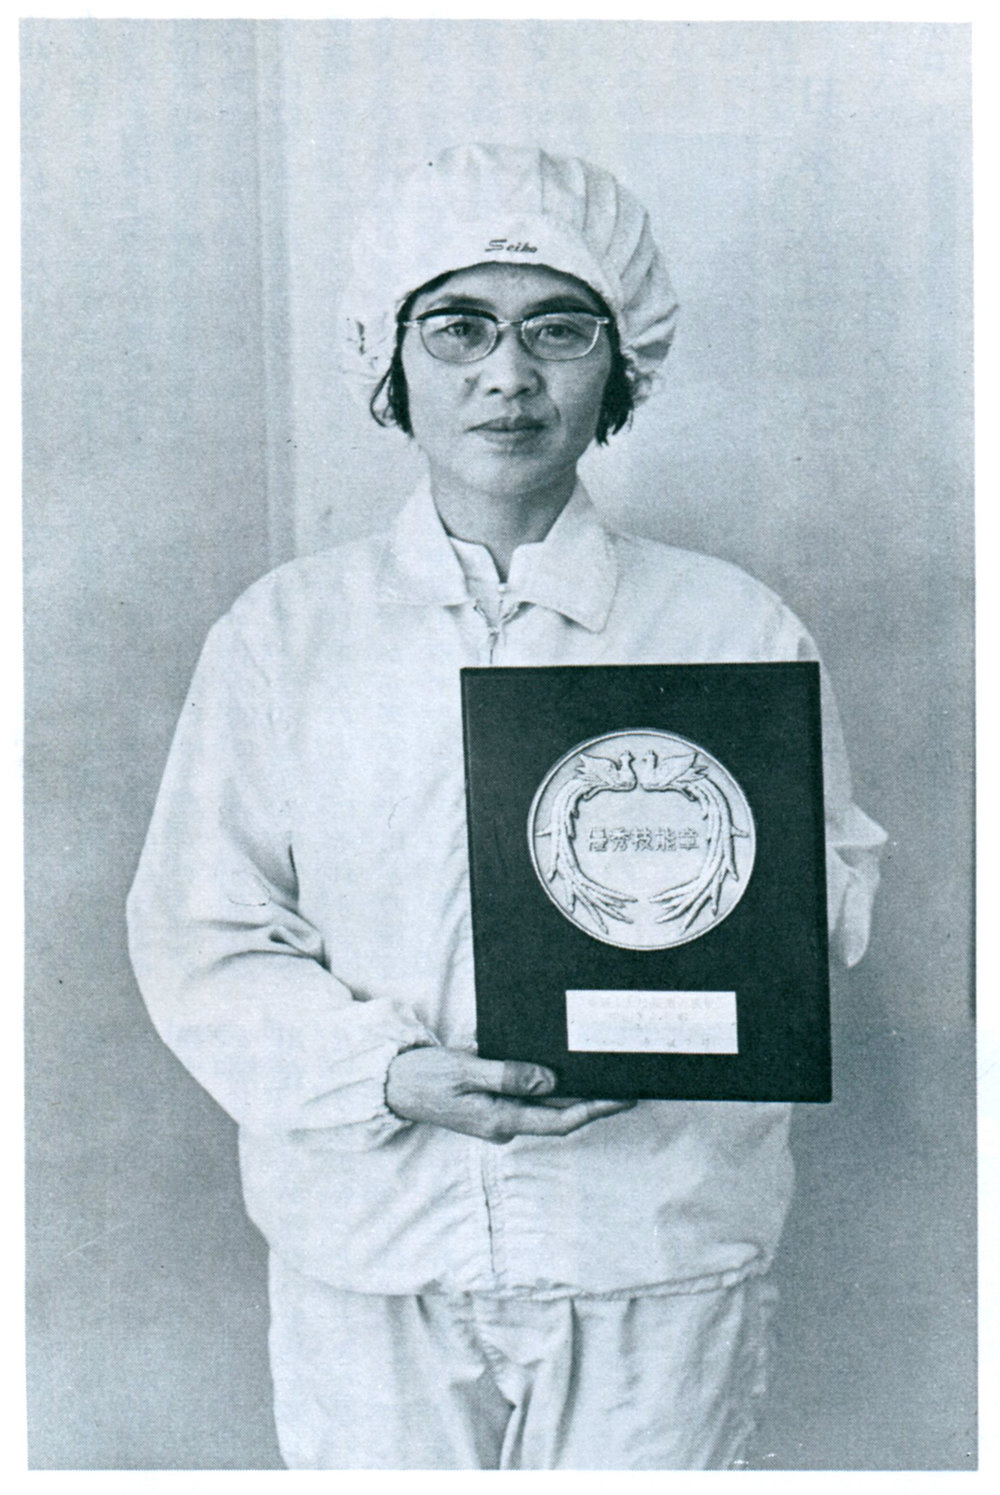 Great Craftsperson Award (1971)